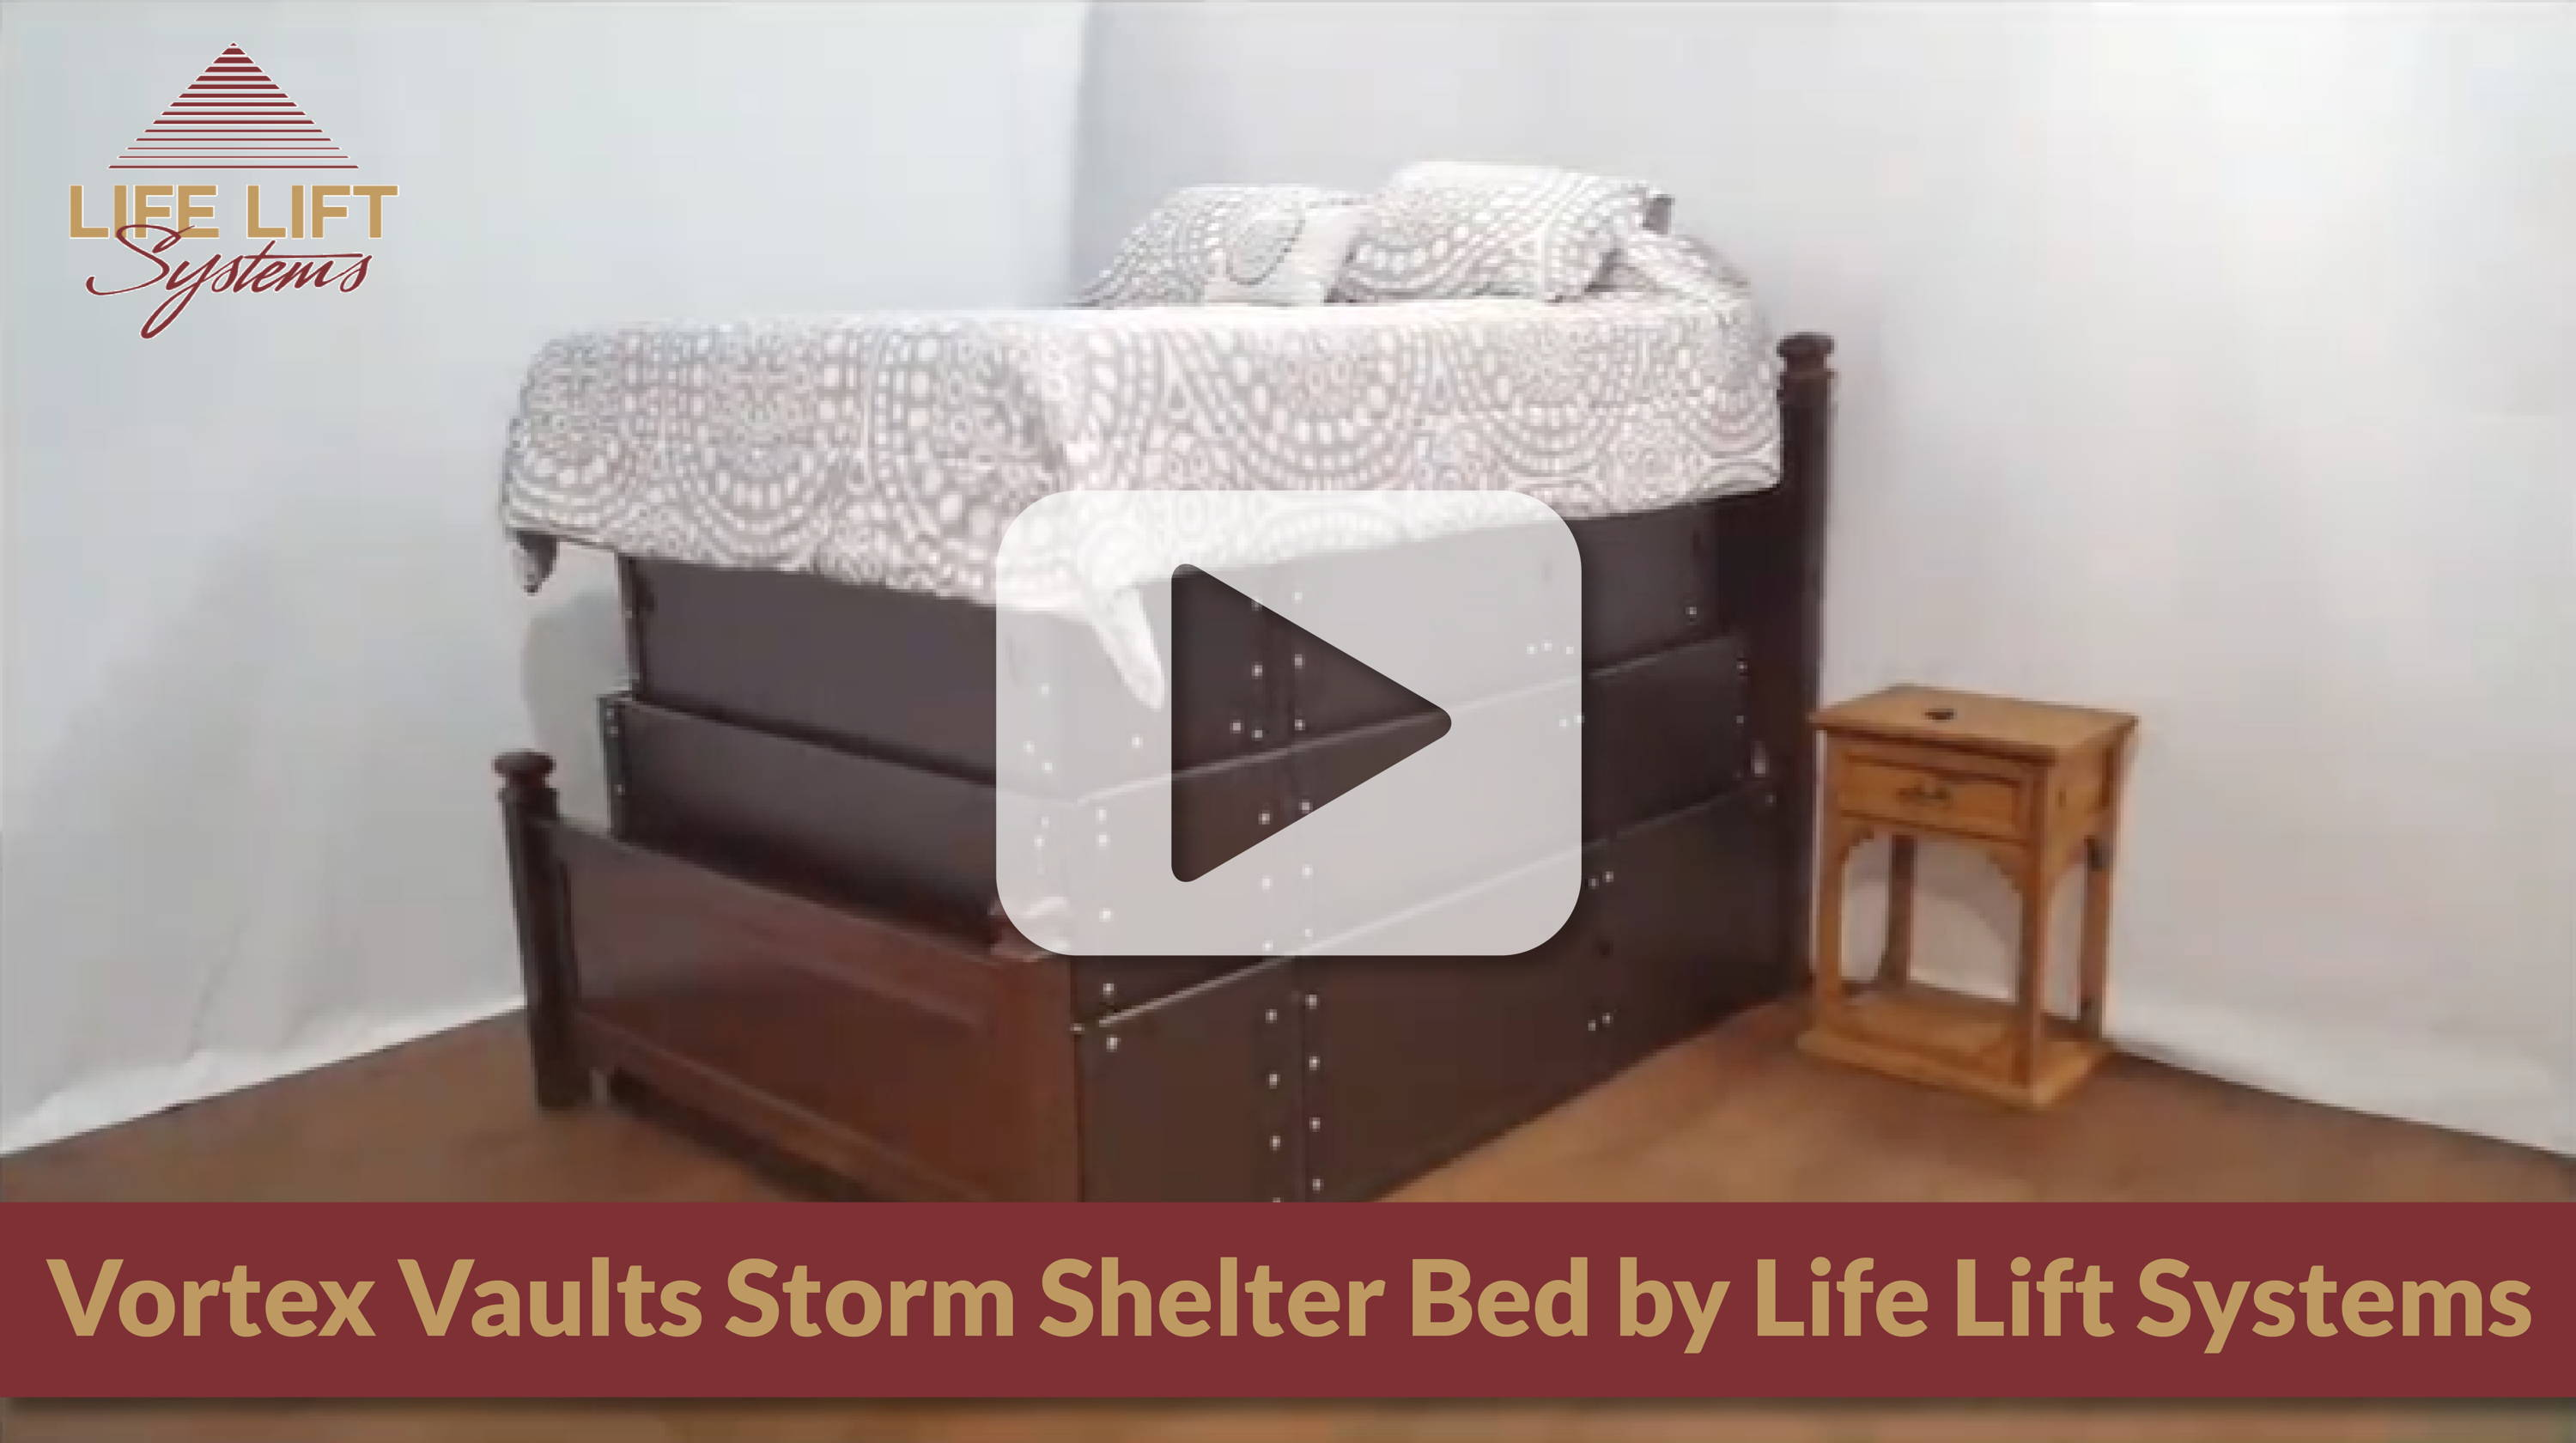 Vortex Vaults Storm Shelter Beds